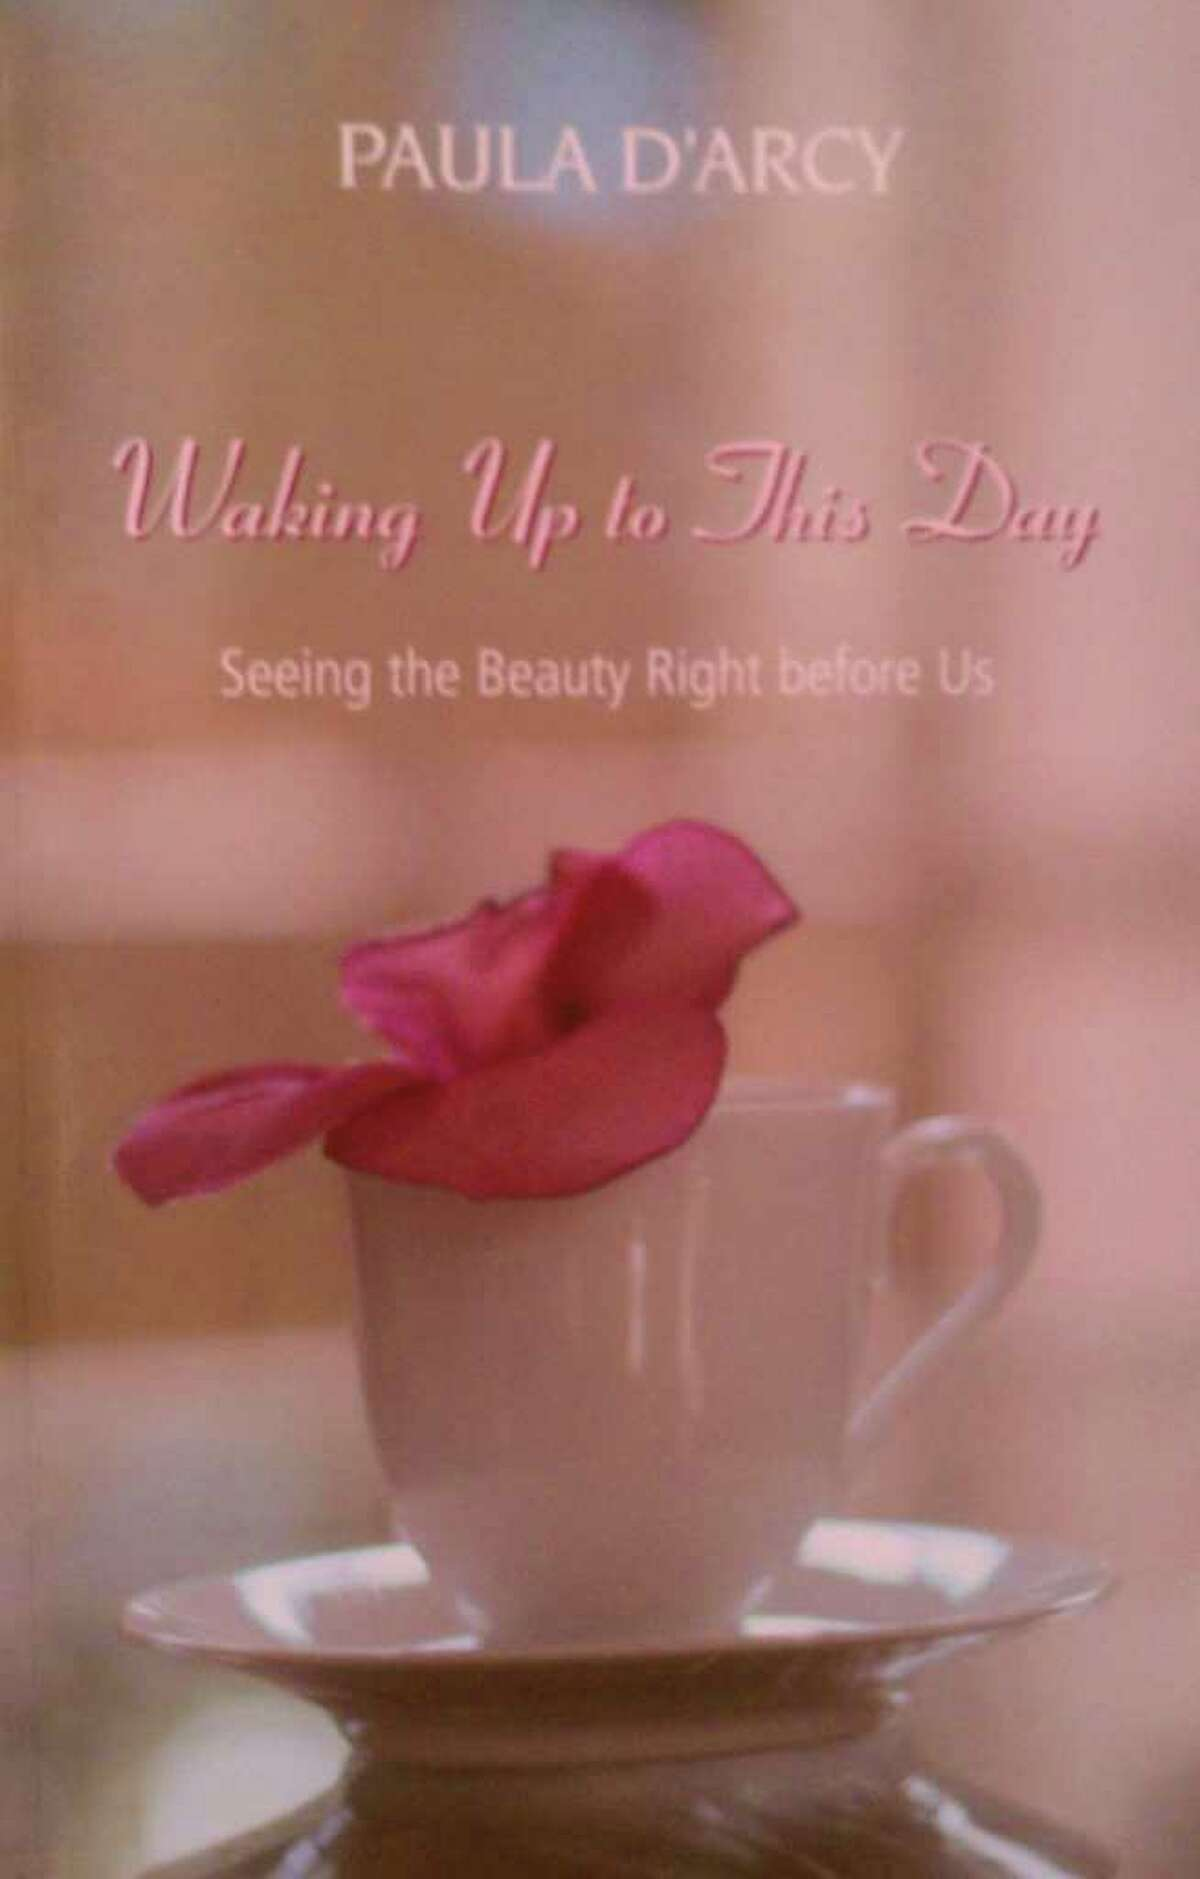 Paula D'Arcy is the author of Waking Up to This Day.